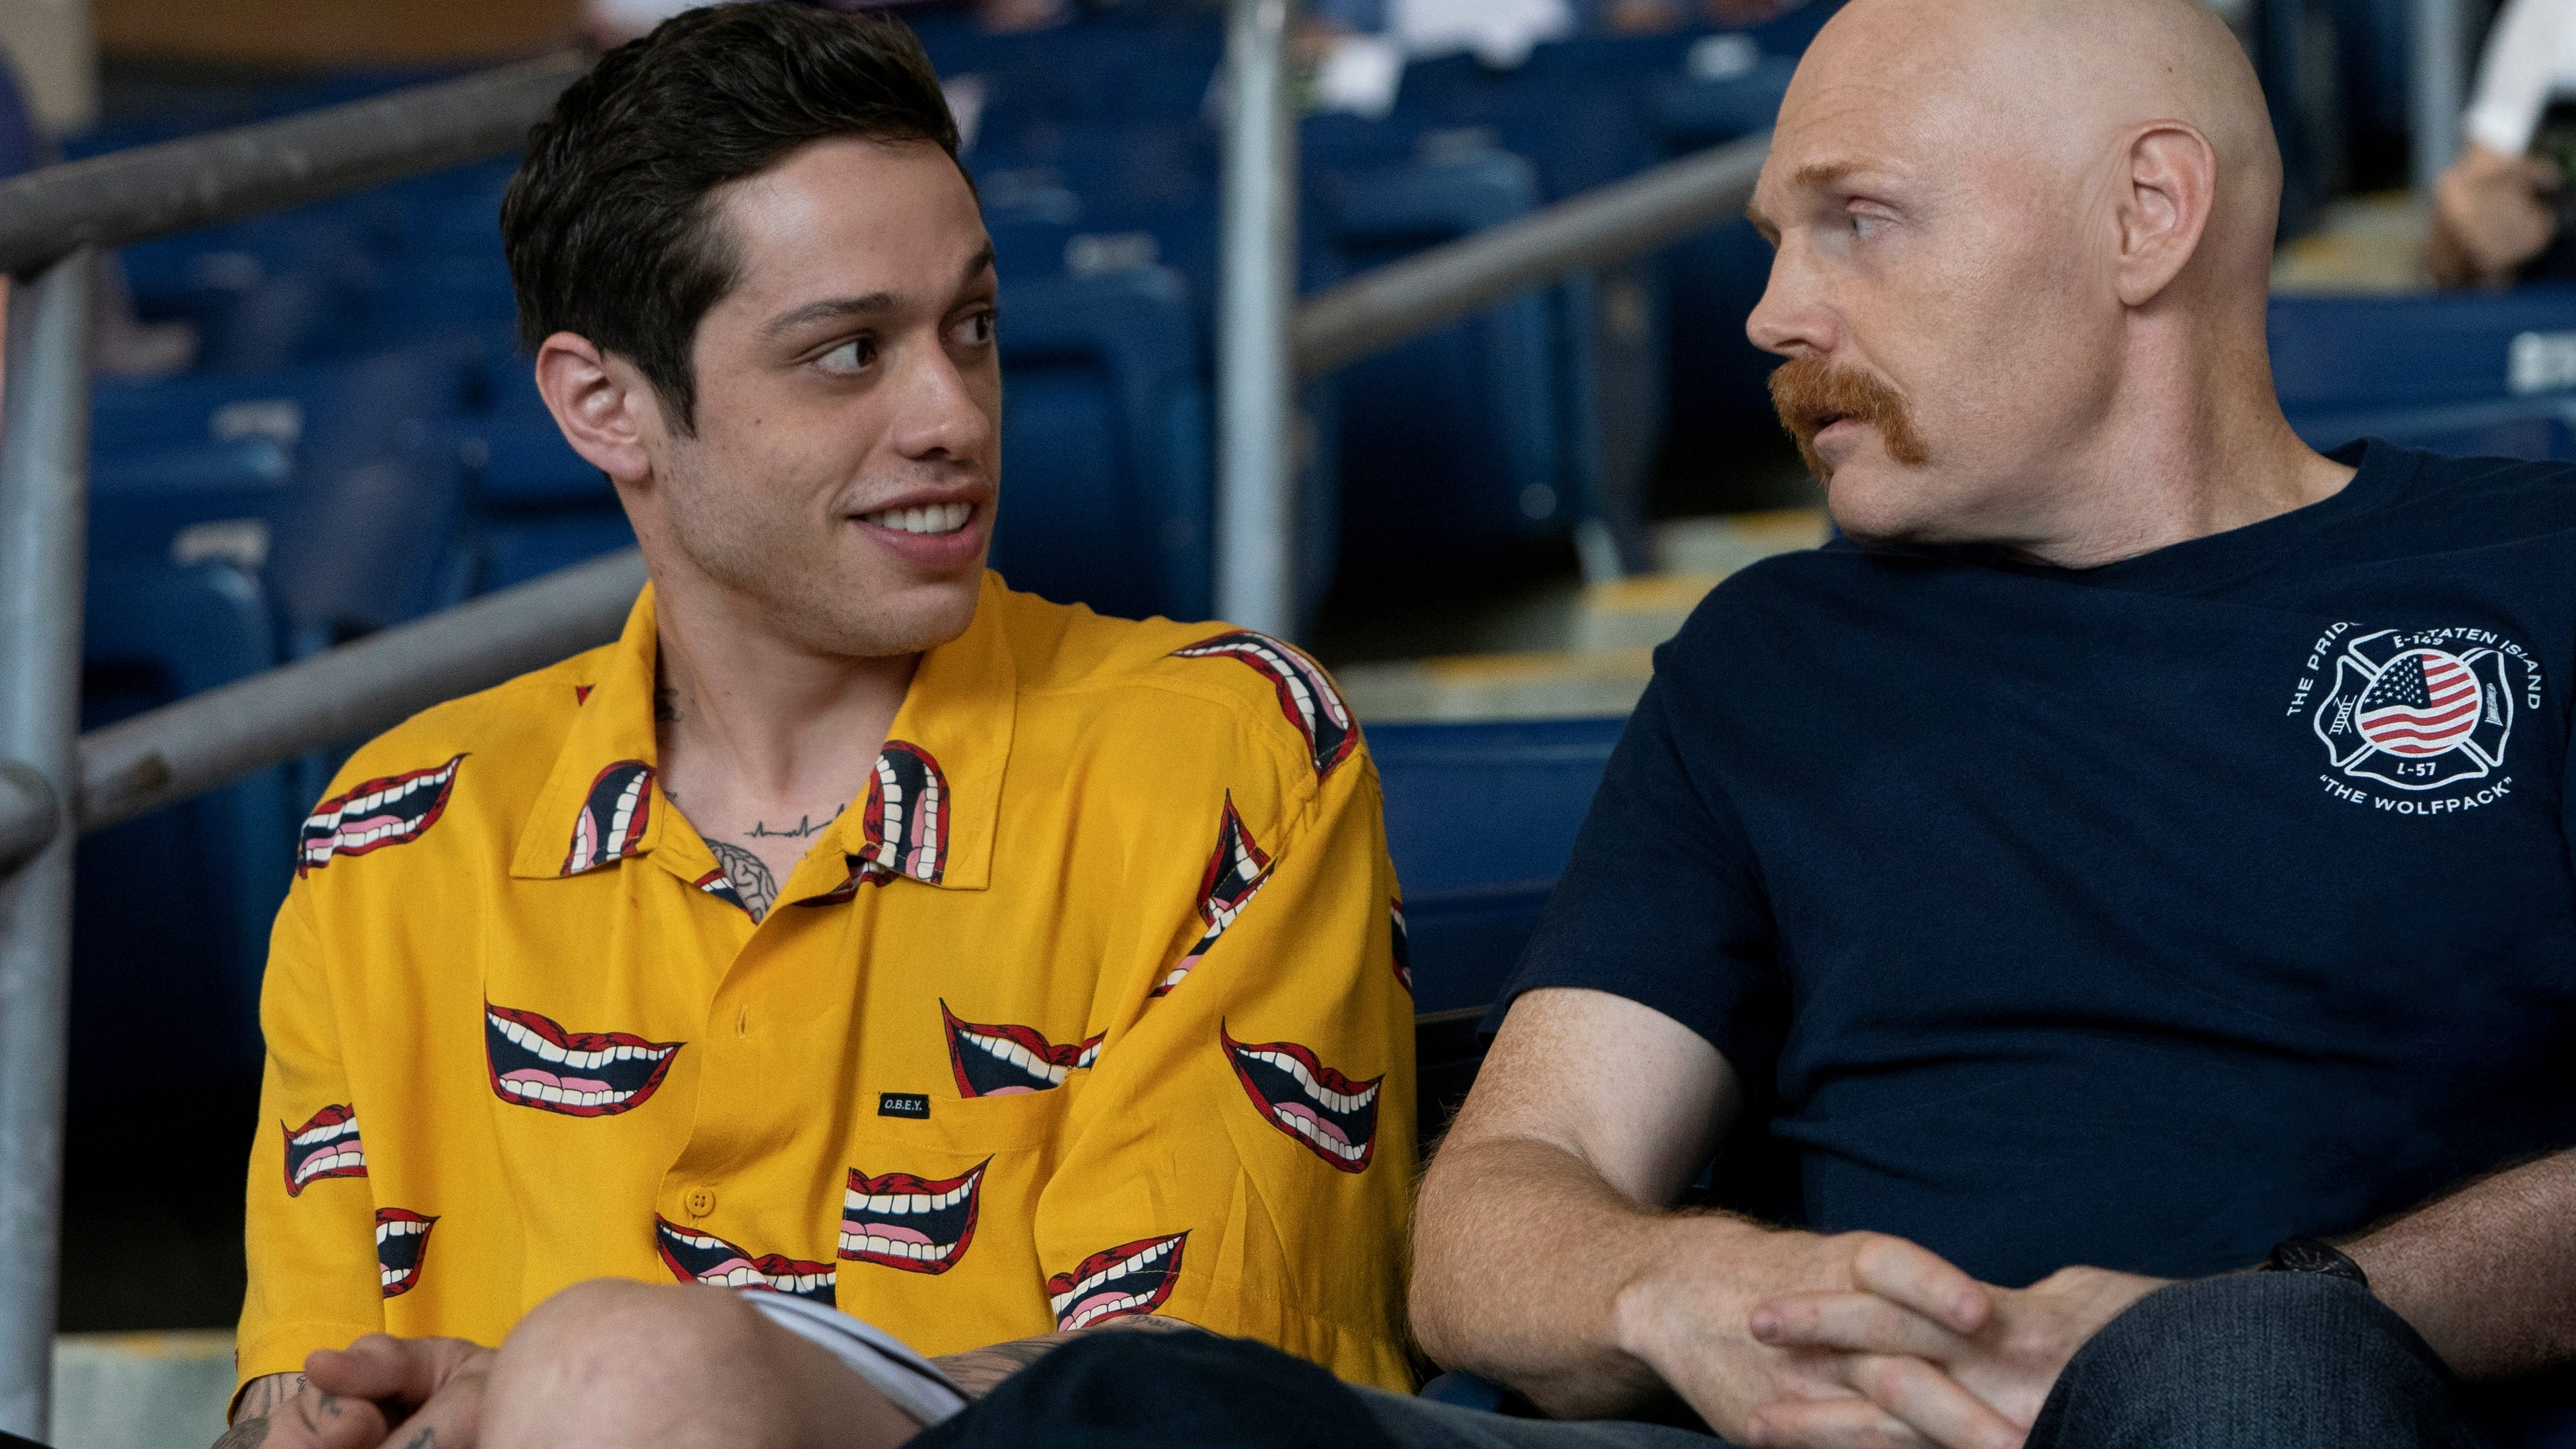 Director Judd Apatow Canton S Bill Burr Is Riotously Funny In King Of Staten Island